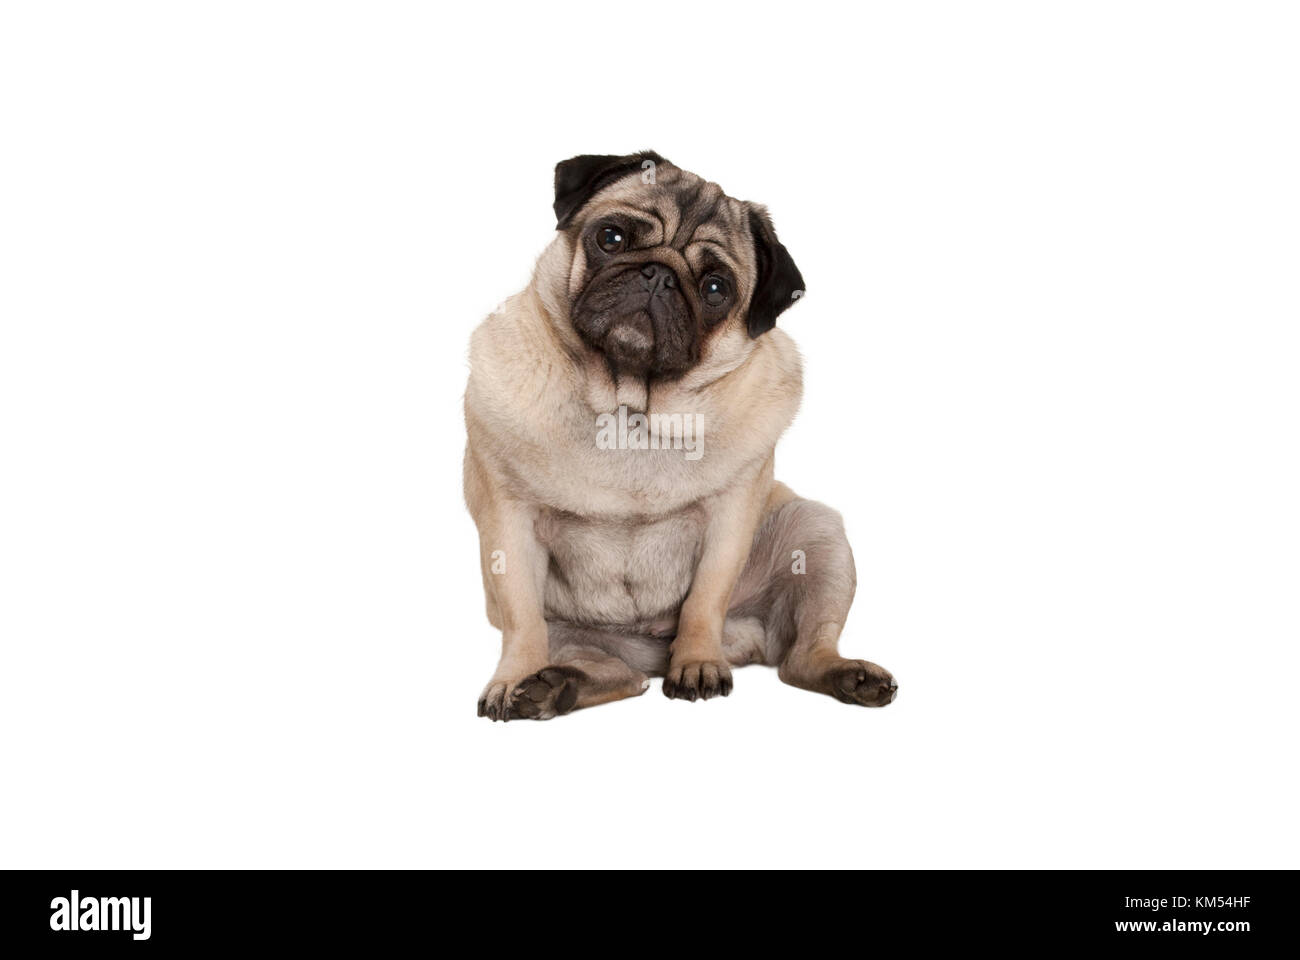 Cute puppy dog pug intelligente avec cheecky face, assis, isolé sur fond blanc Photo Stock